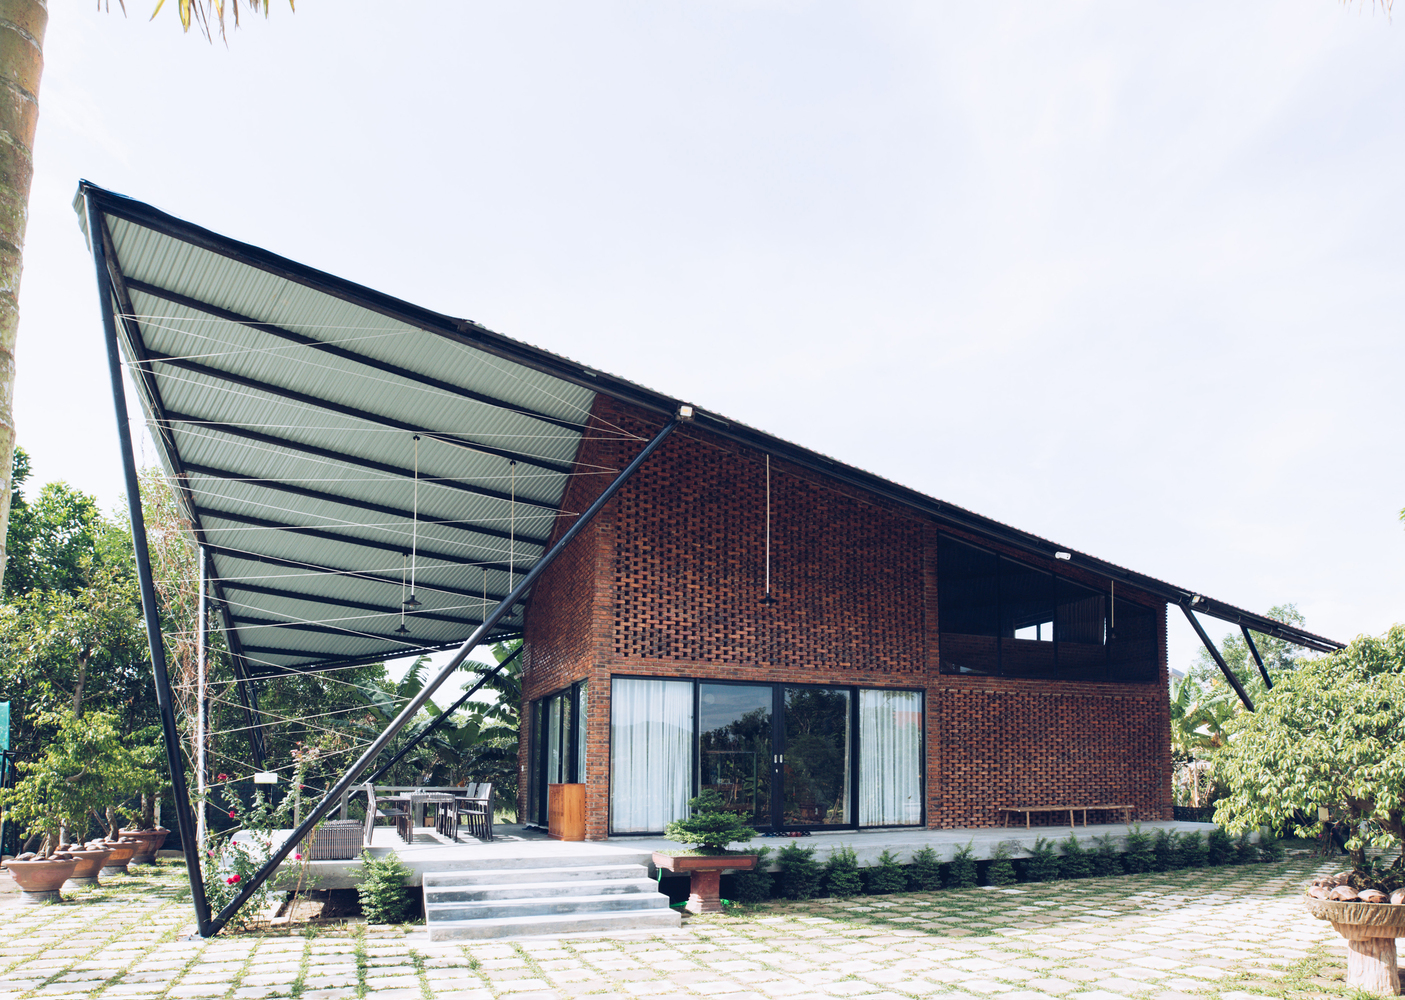 Kite Village House